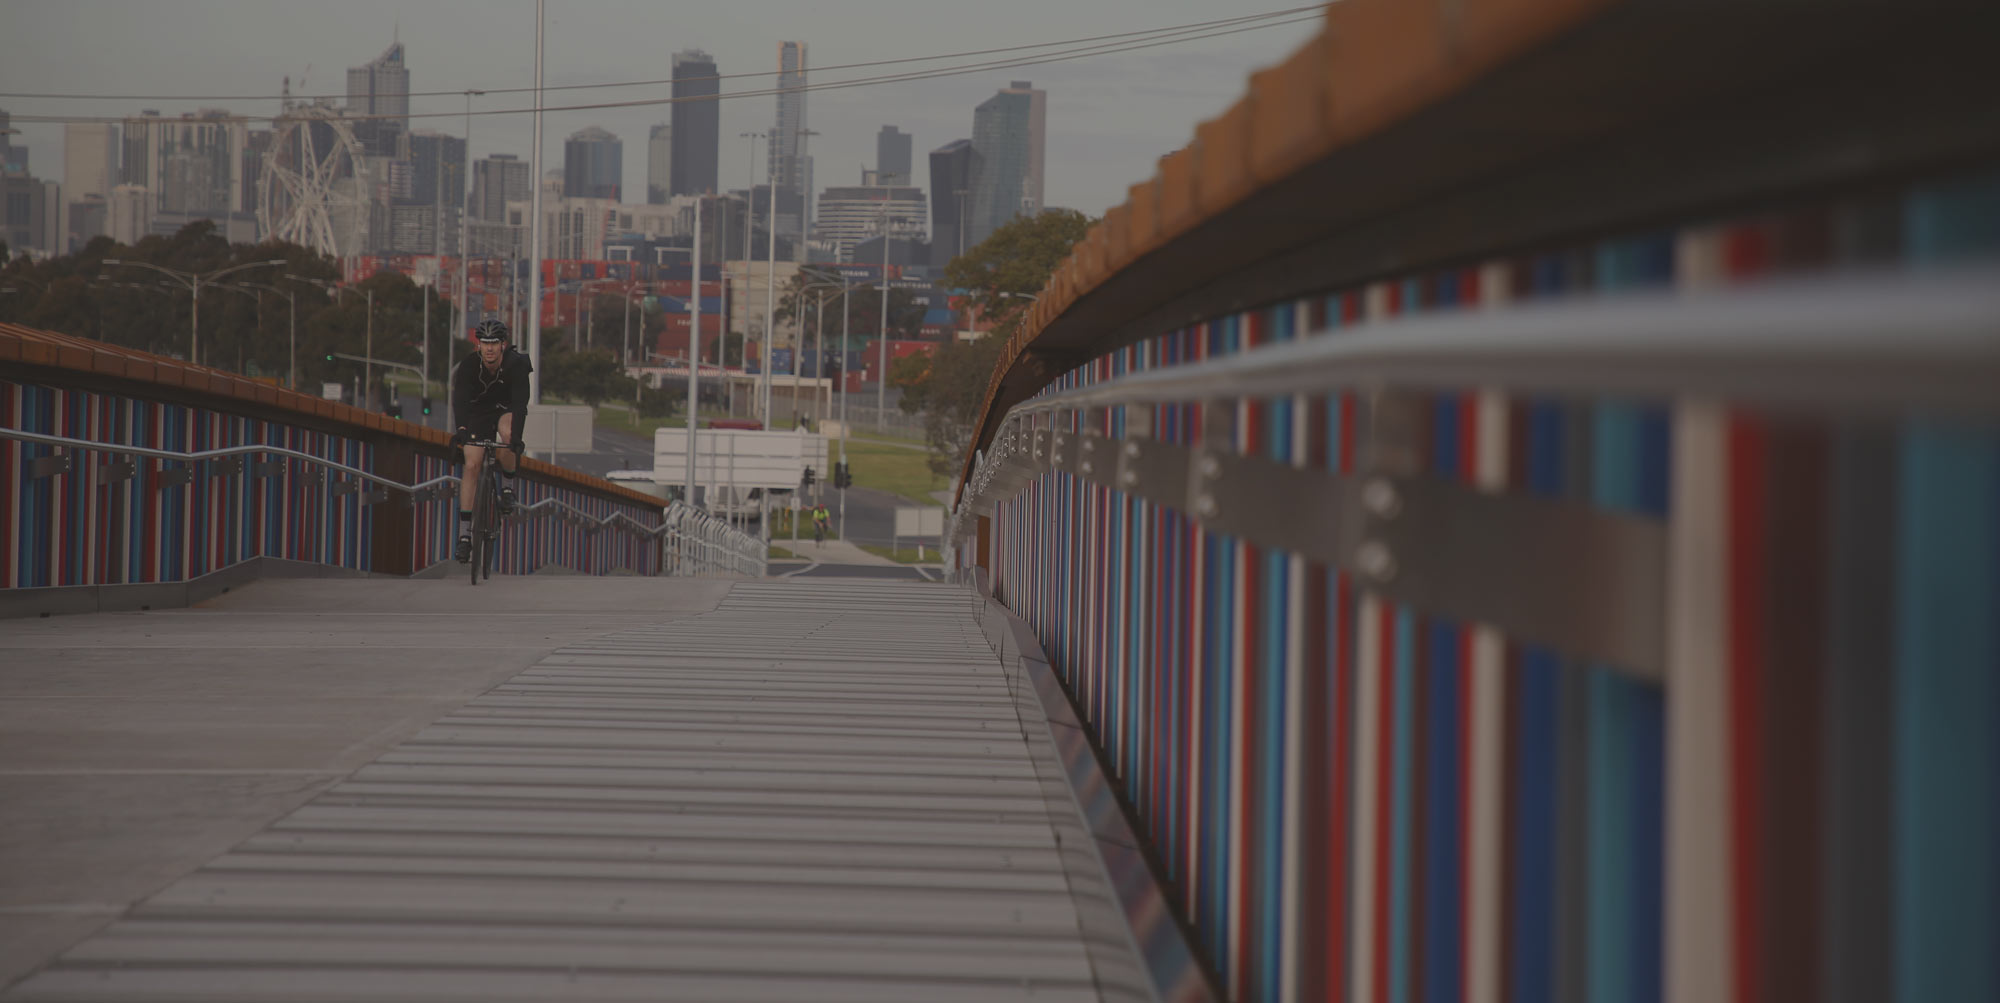 Tolled Cycleways for Melbourne, if the price was right I would pay for it